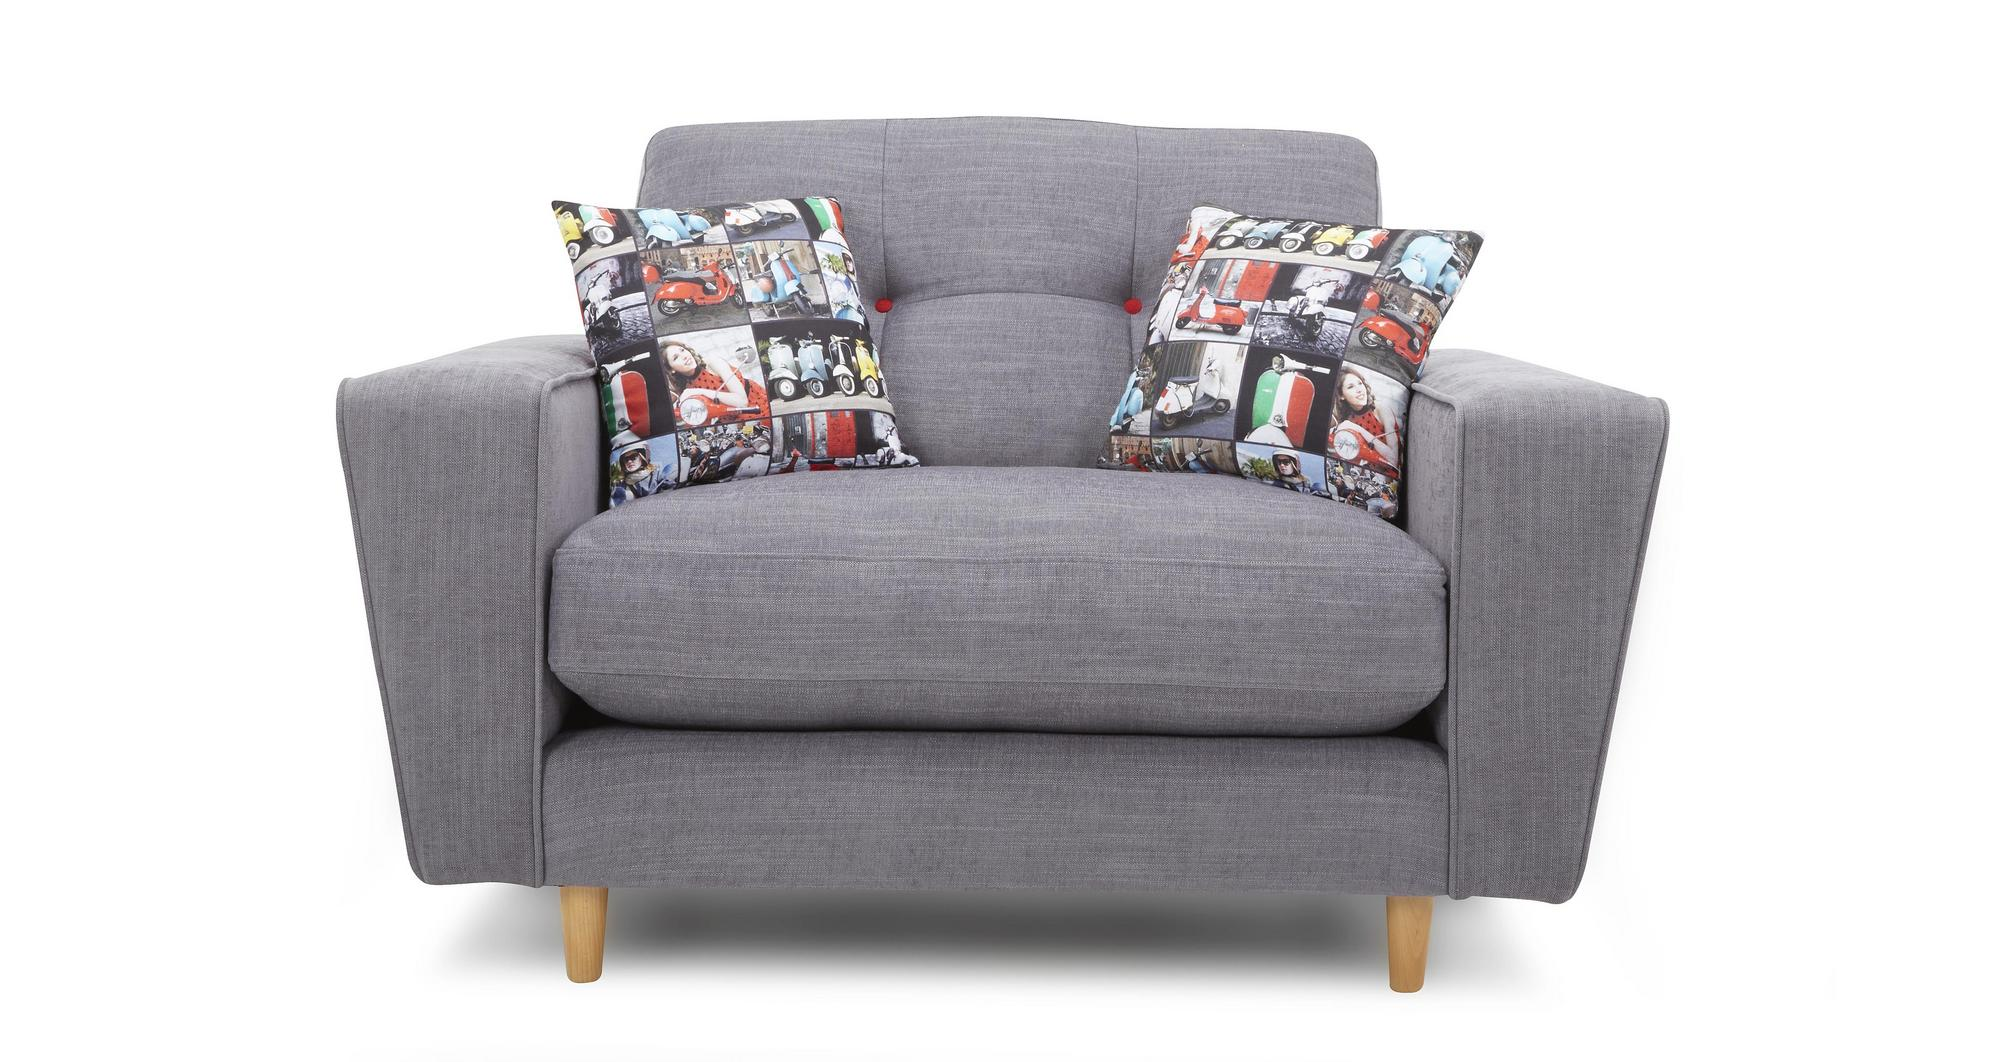 Dfs Beckett Grey Fabric Cuddler Sofa 57328 Ebay